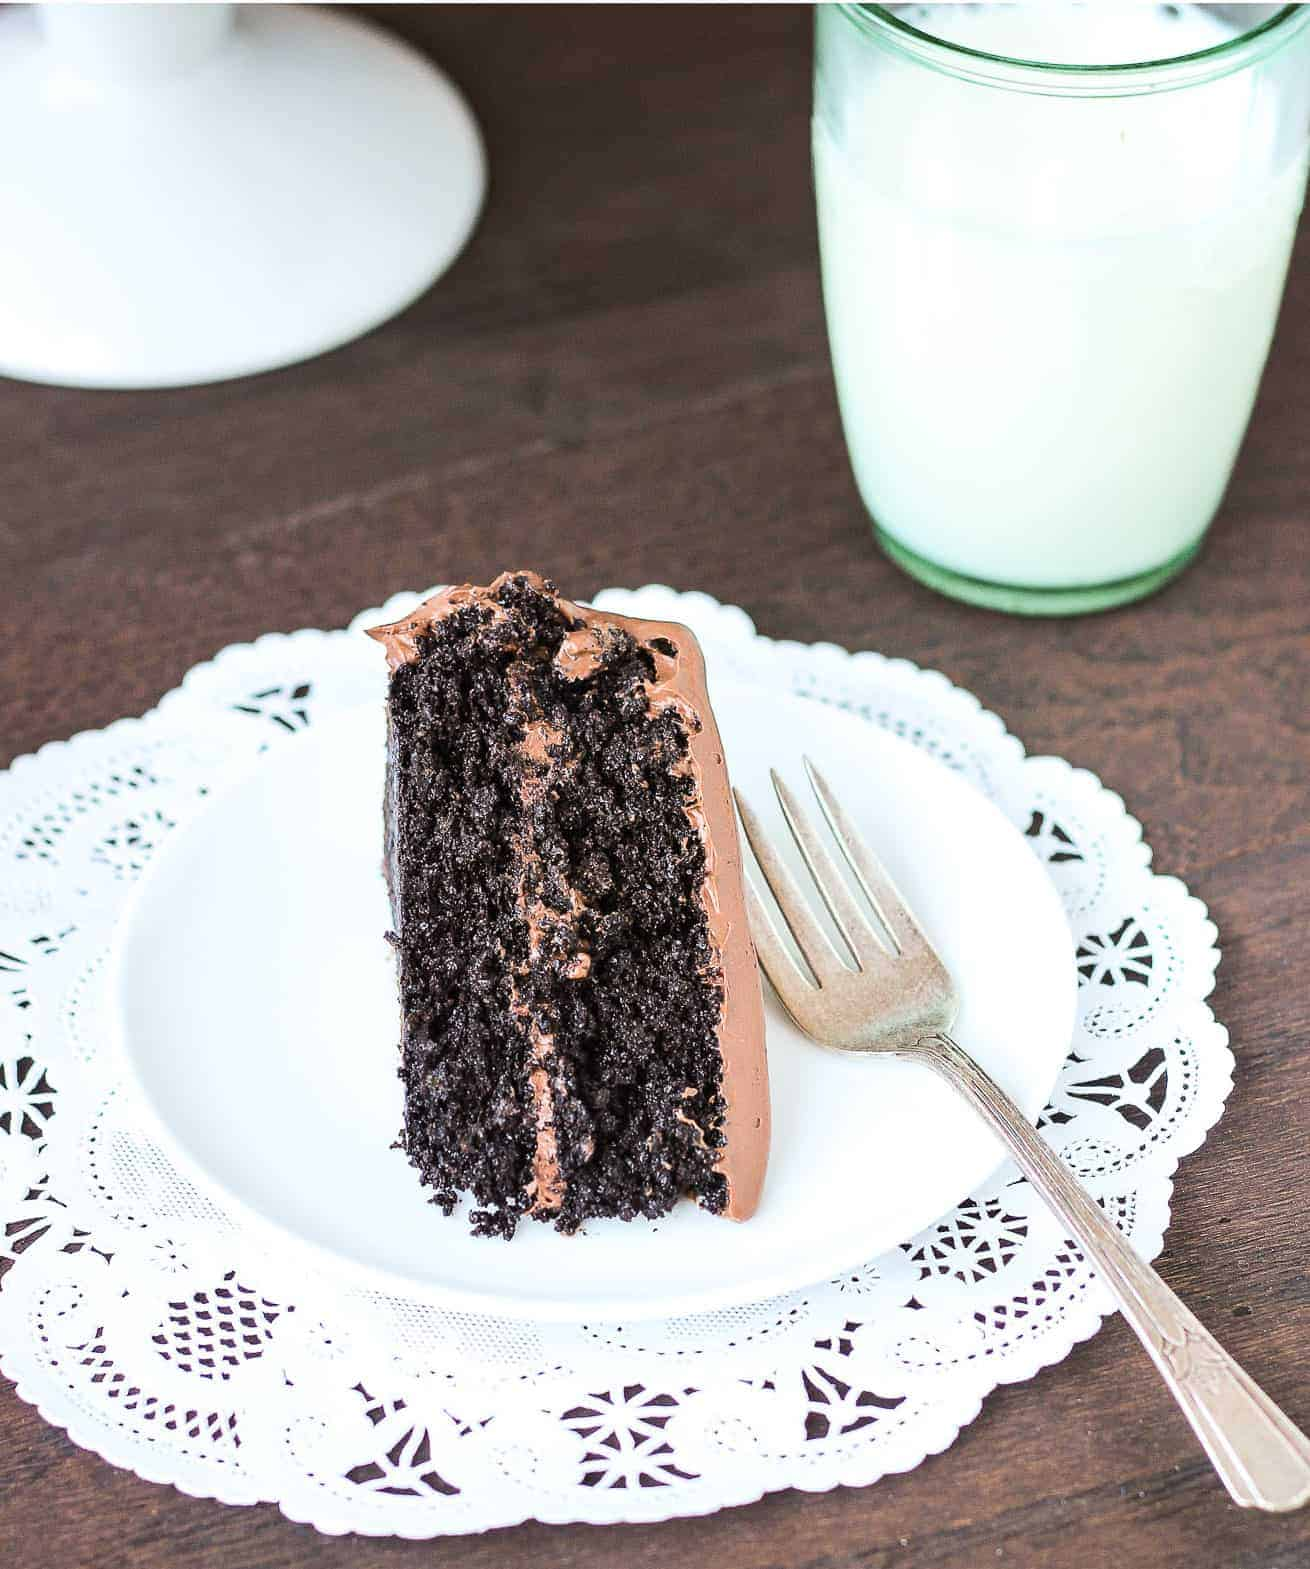 quinoa dessert chocolate cake using quinoa